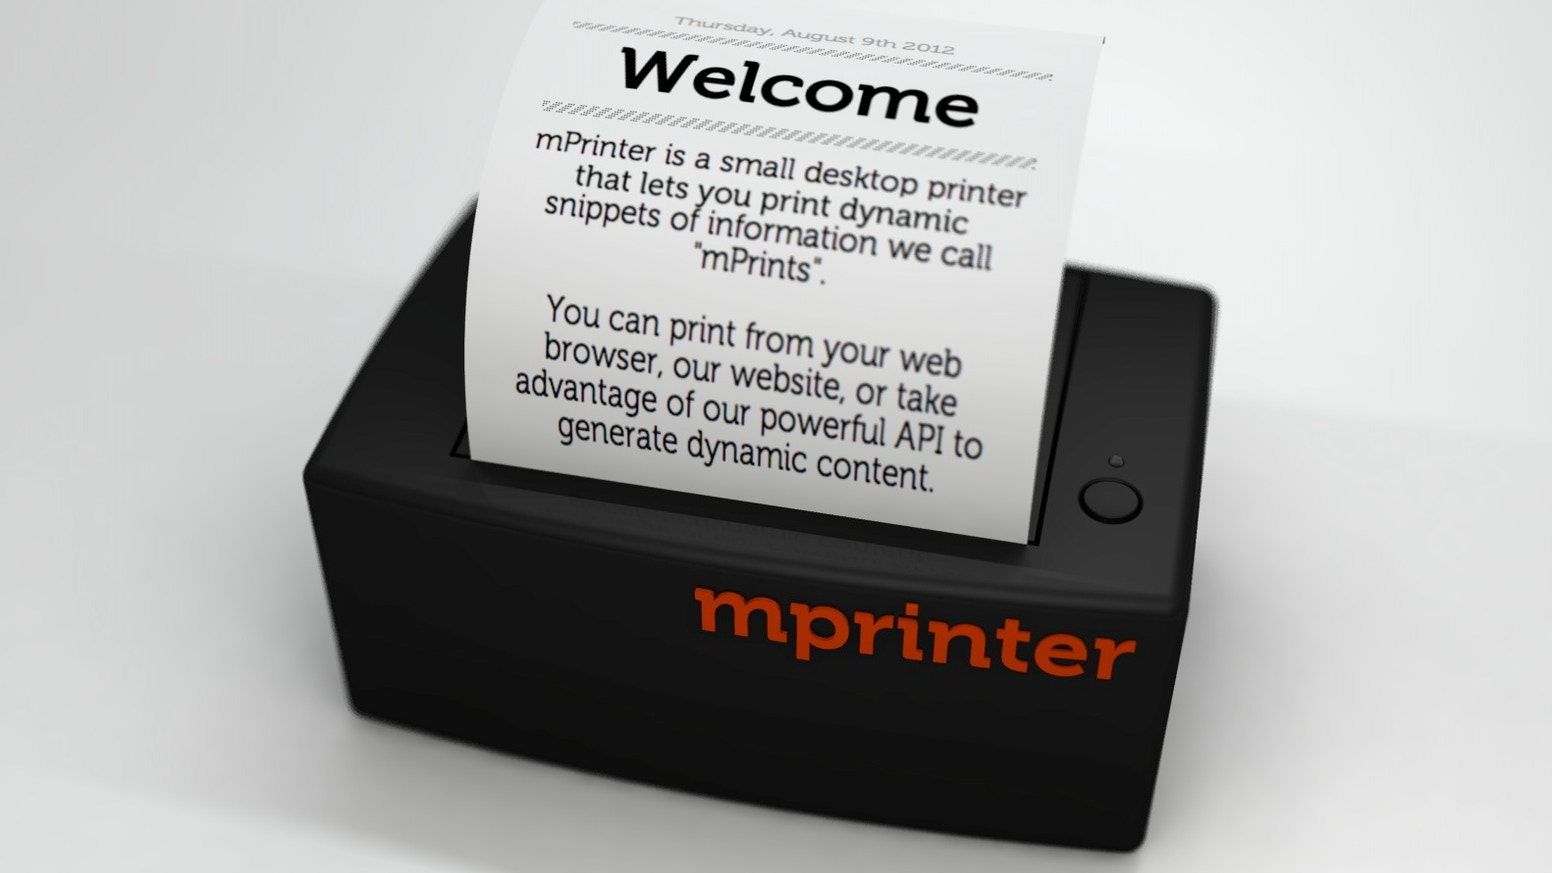 mPrinter - An analog printer for a digital world by Andy Muldowney